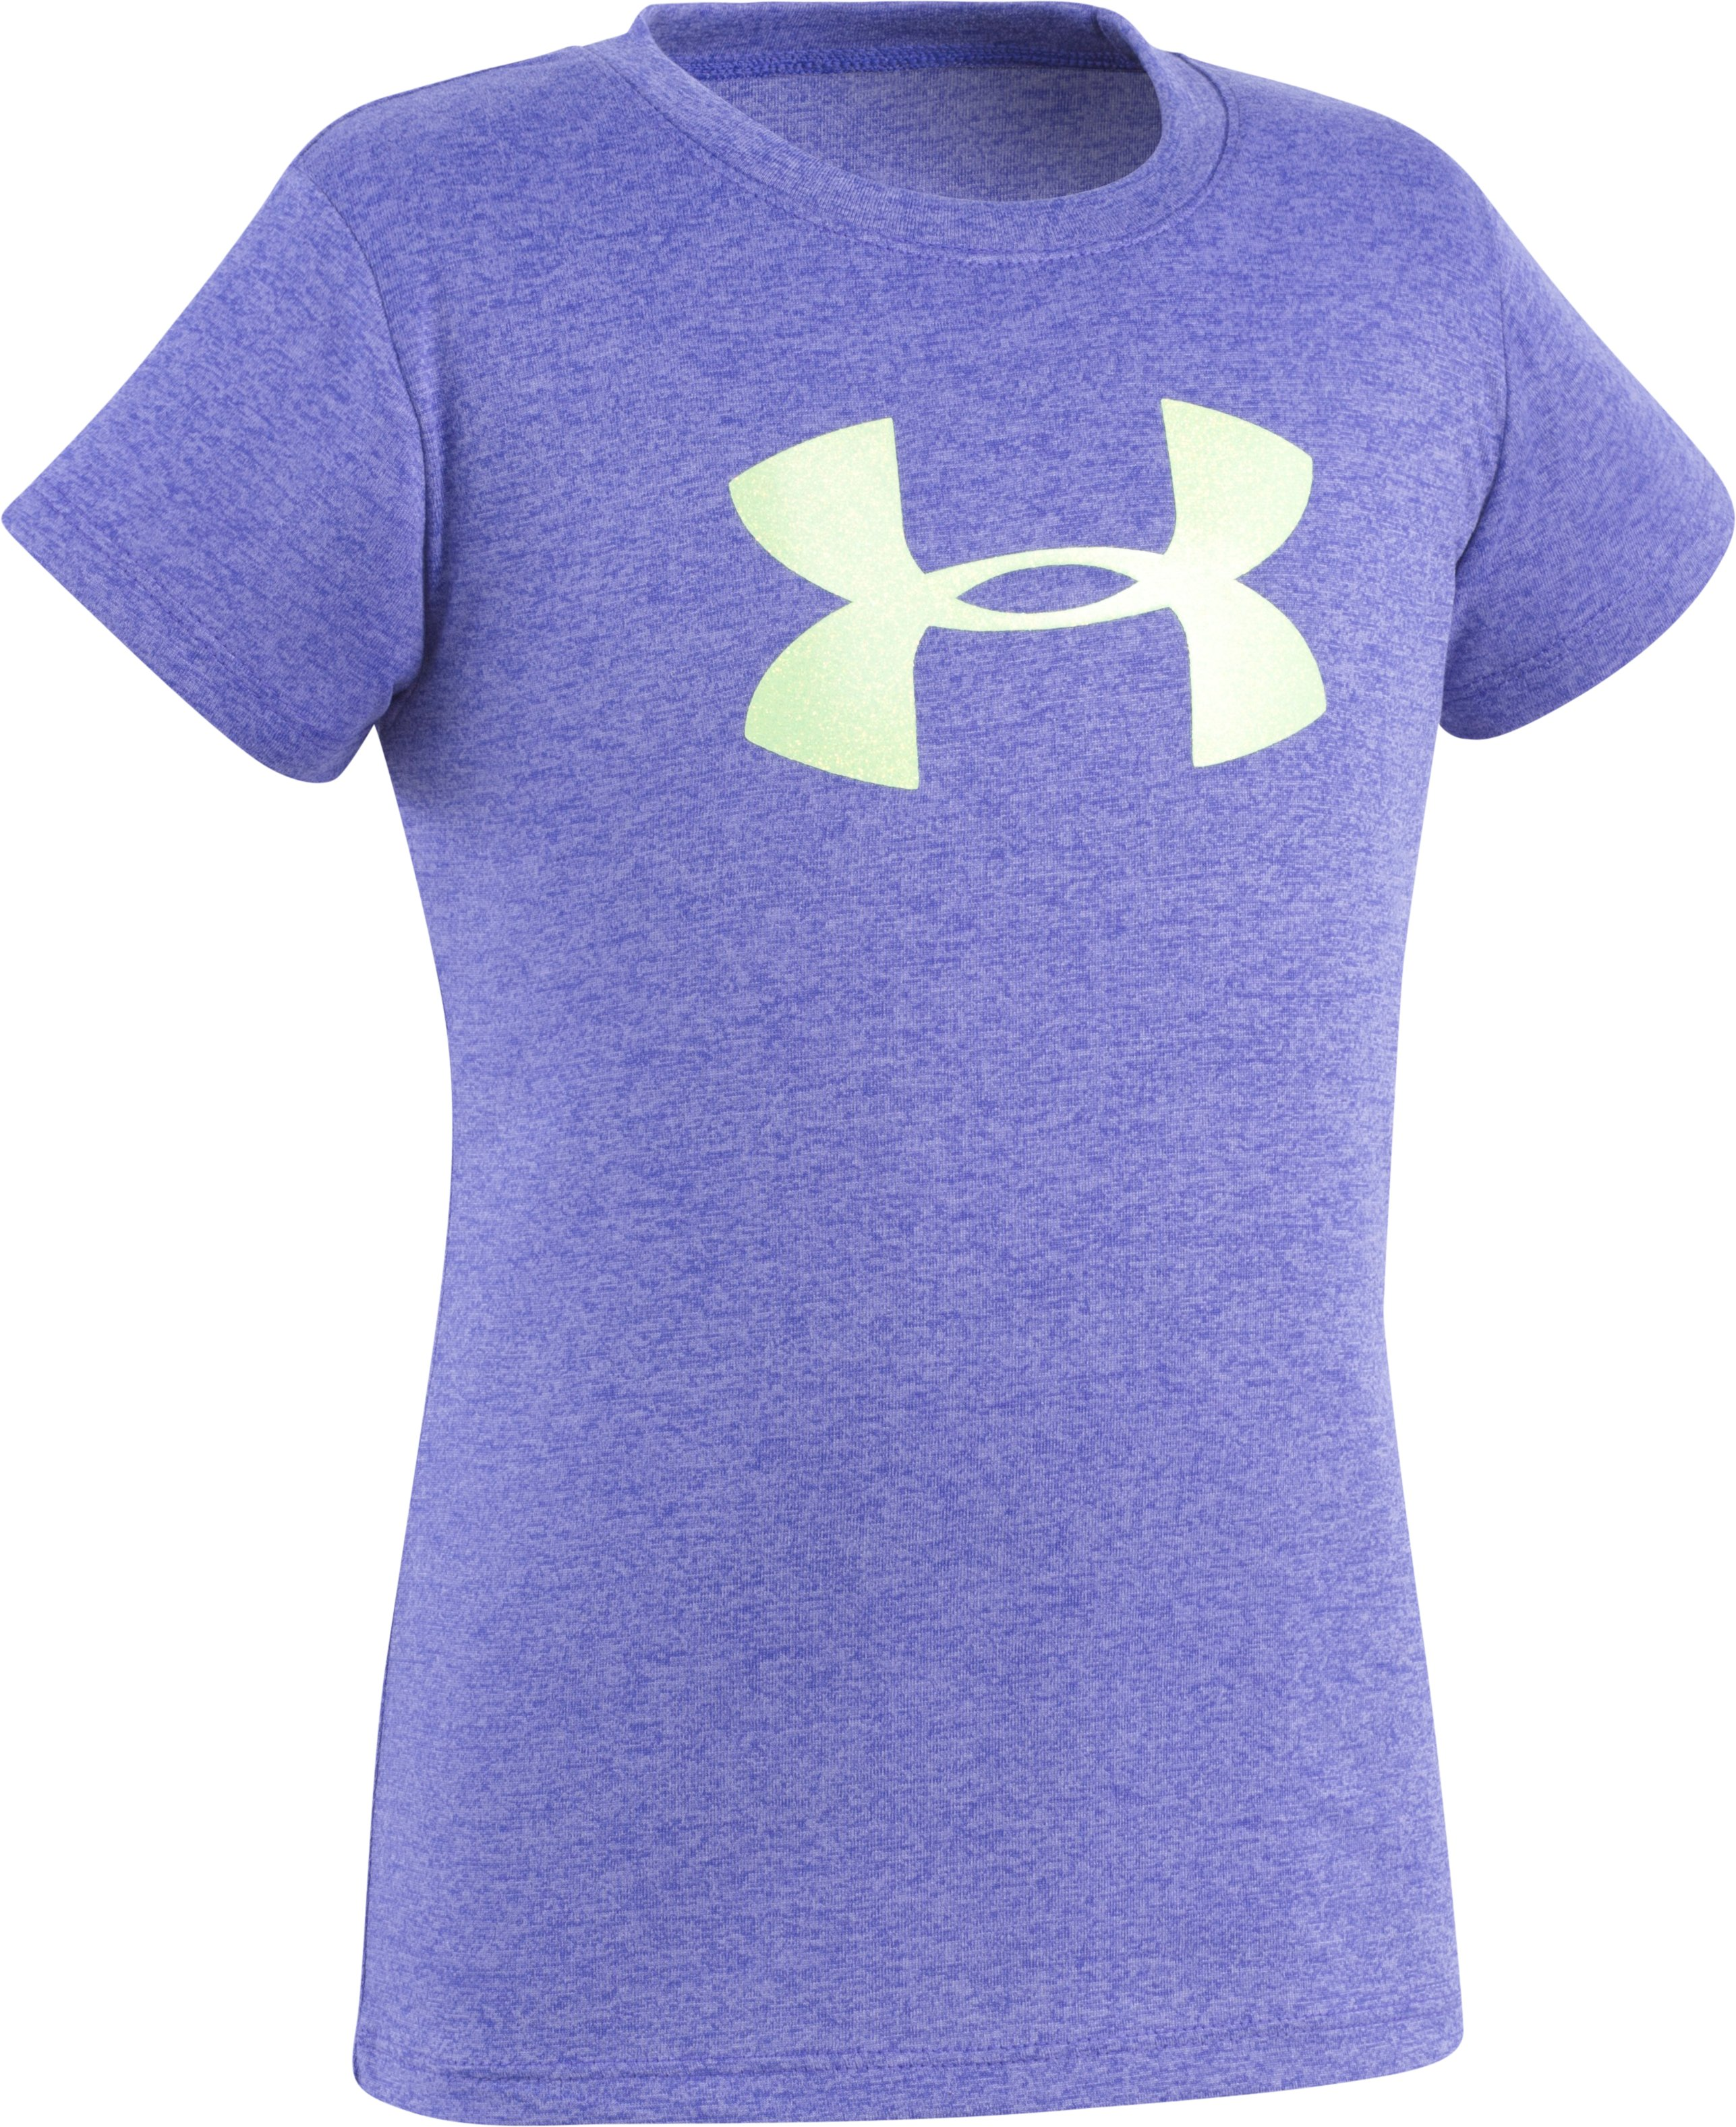 Girls' Pre-School UA Big Logo T-Shirt, CONSTELLATION PURPLE, Laydown